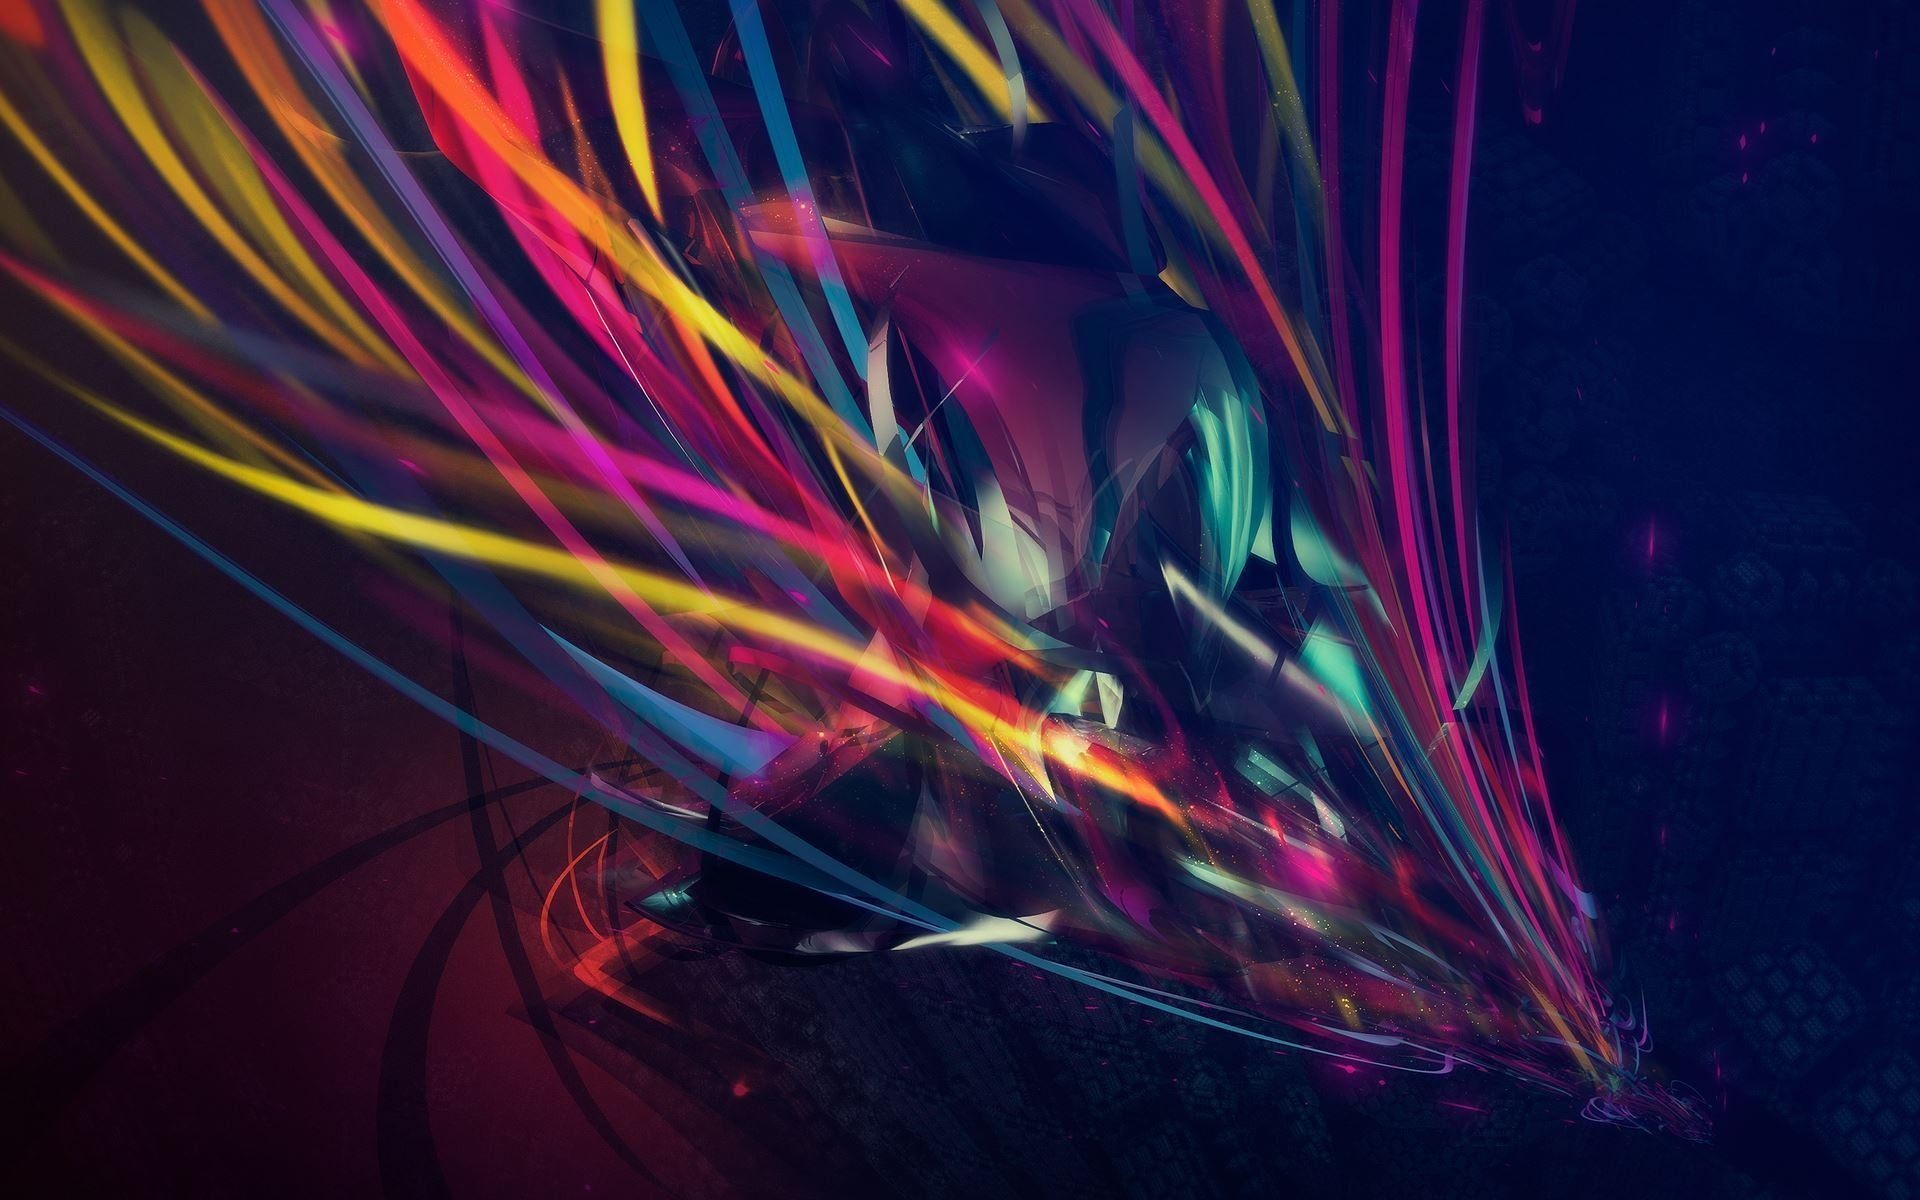 1920x1200 3D Cool Abstract Desktop Free Wallpapers and Super Backgrounds .